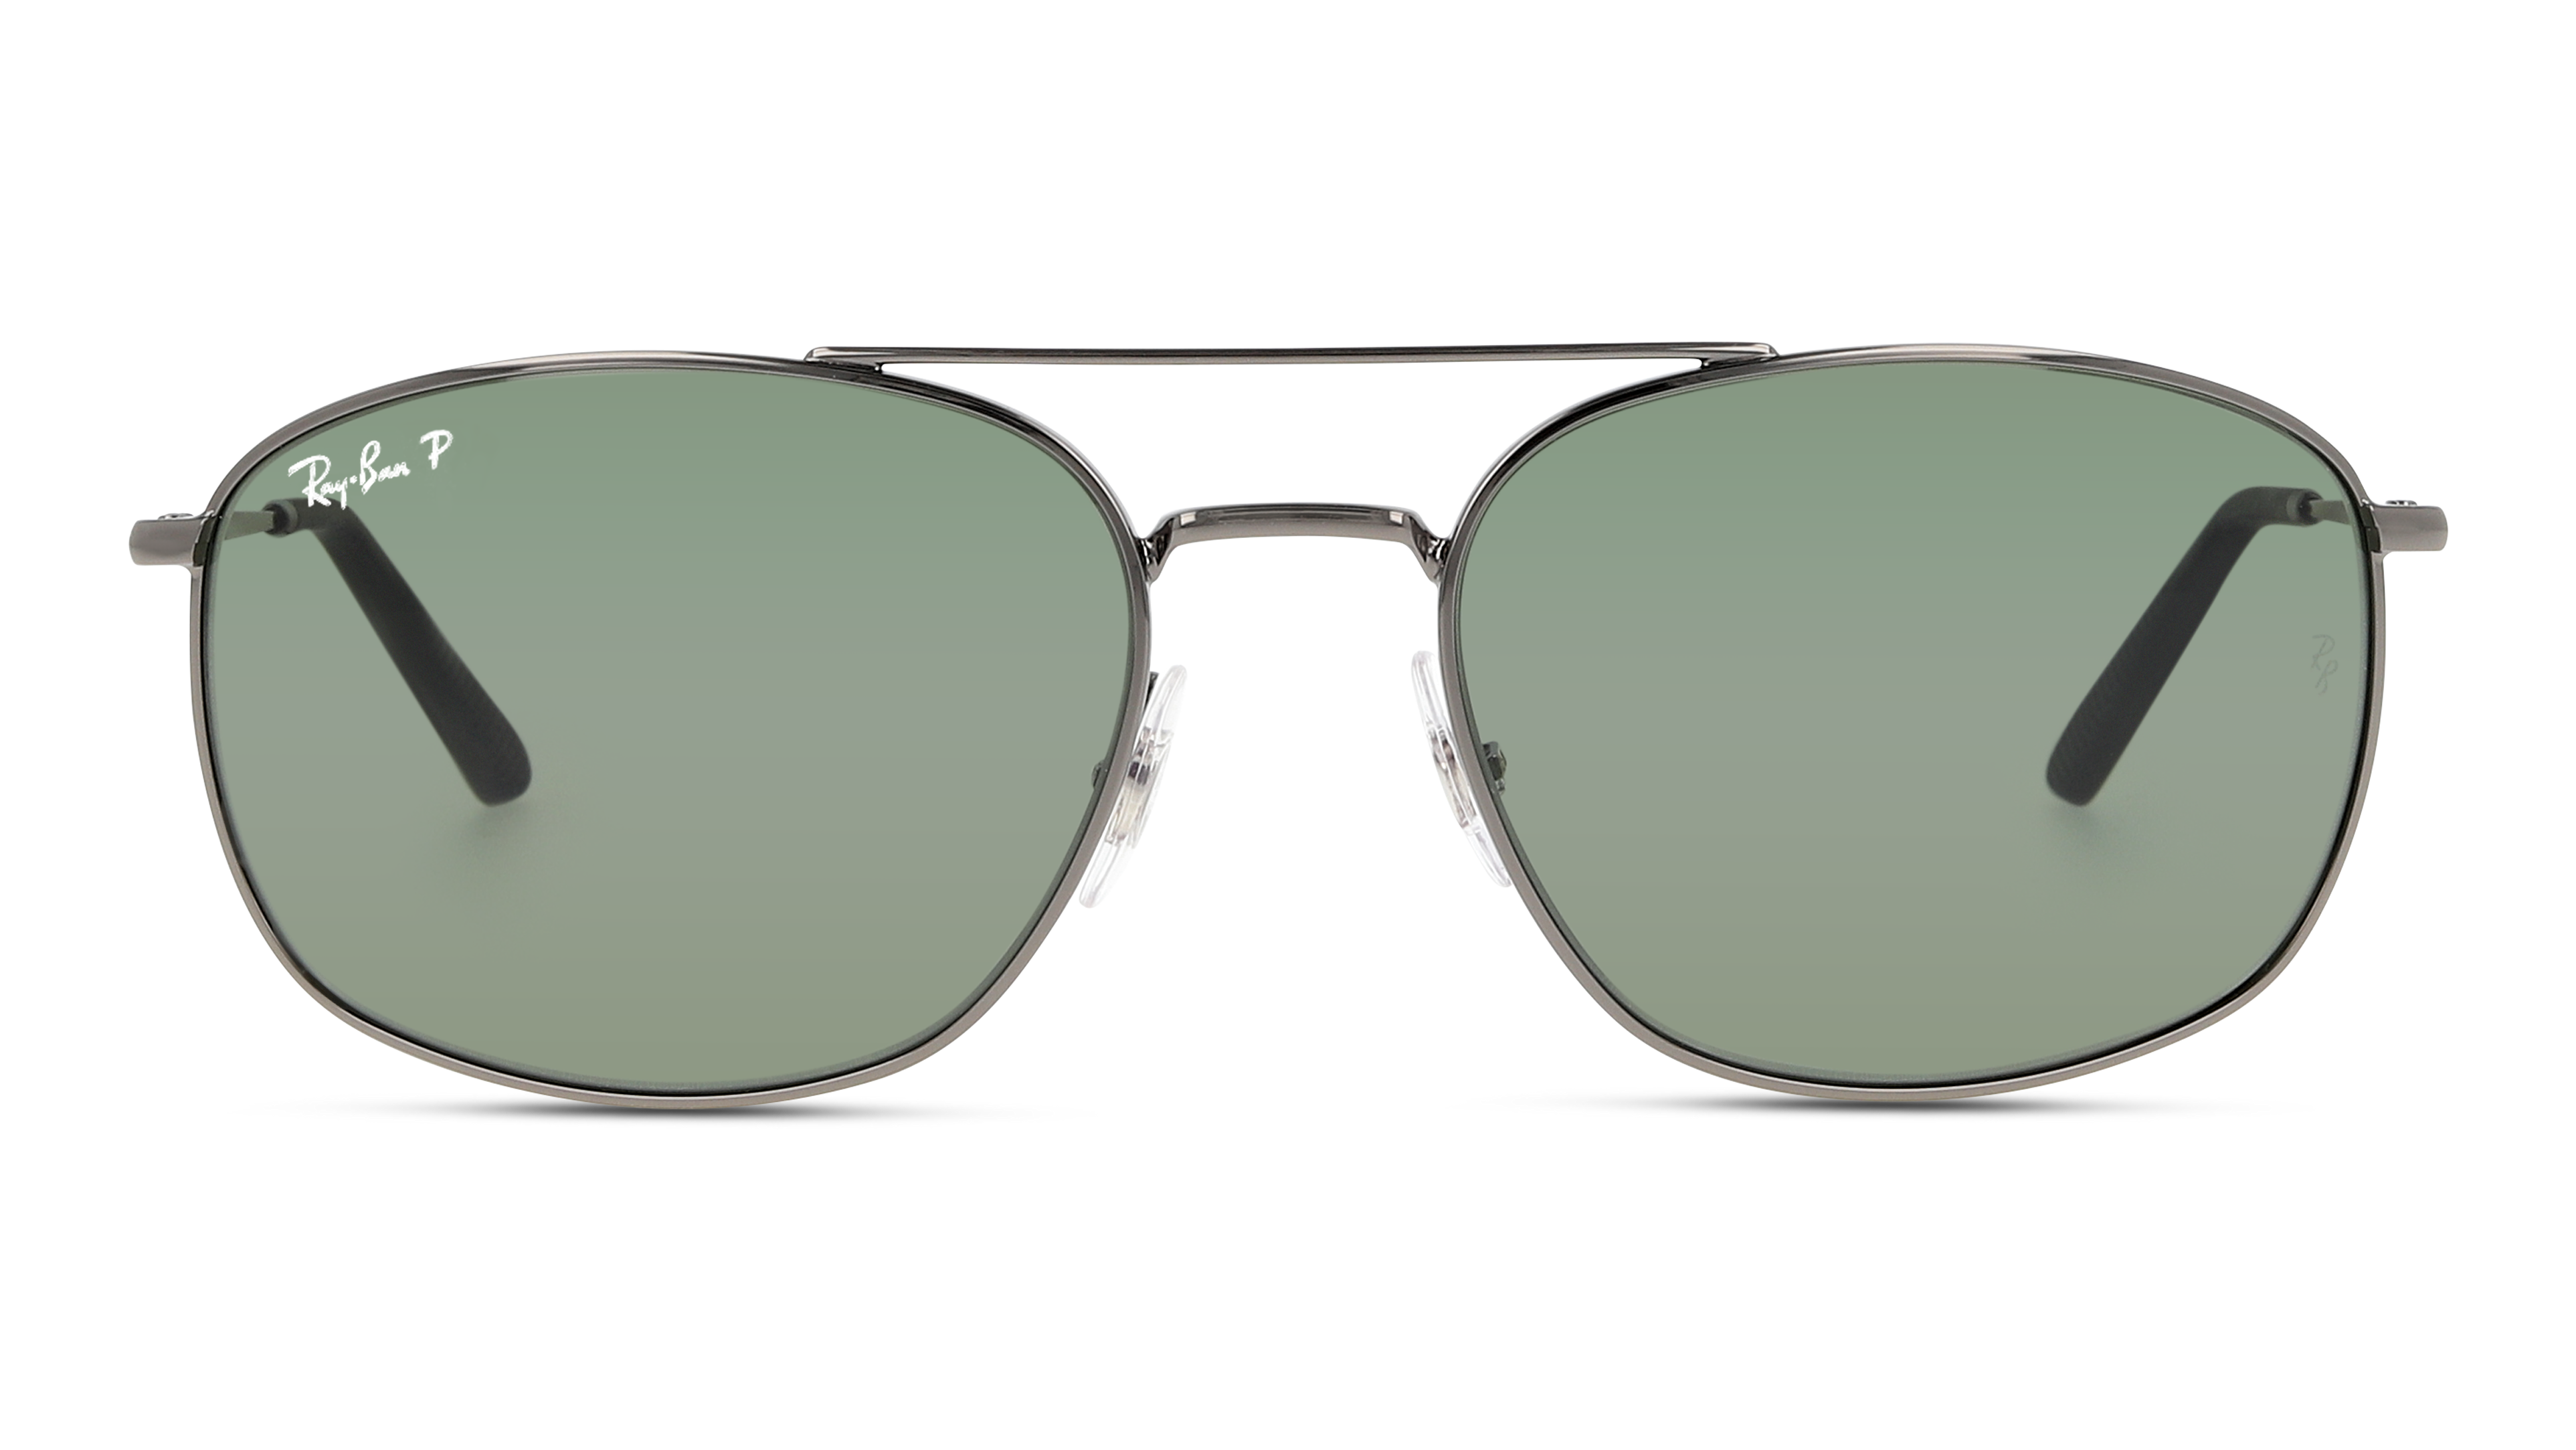 Front Ray-Ban 0RB3654/004/9A/6018/145 Grå